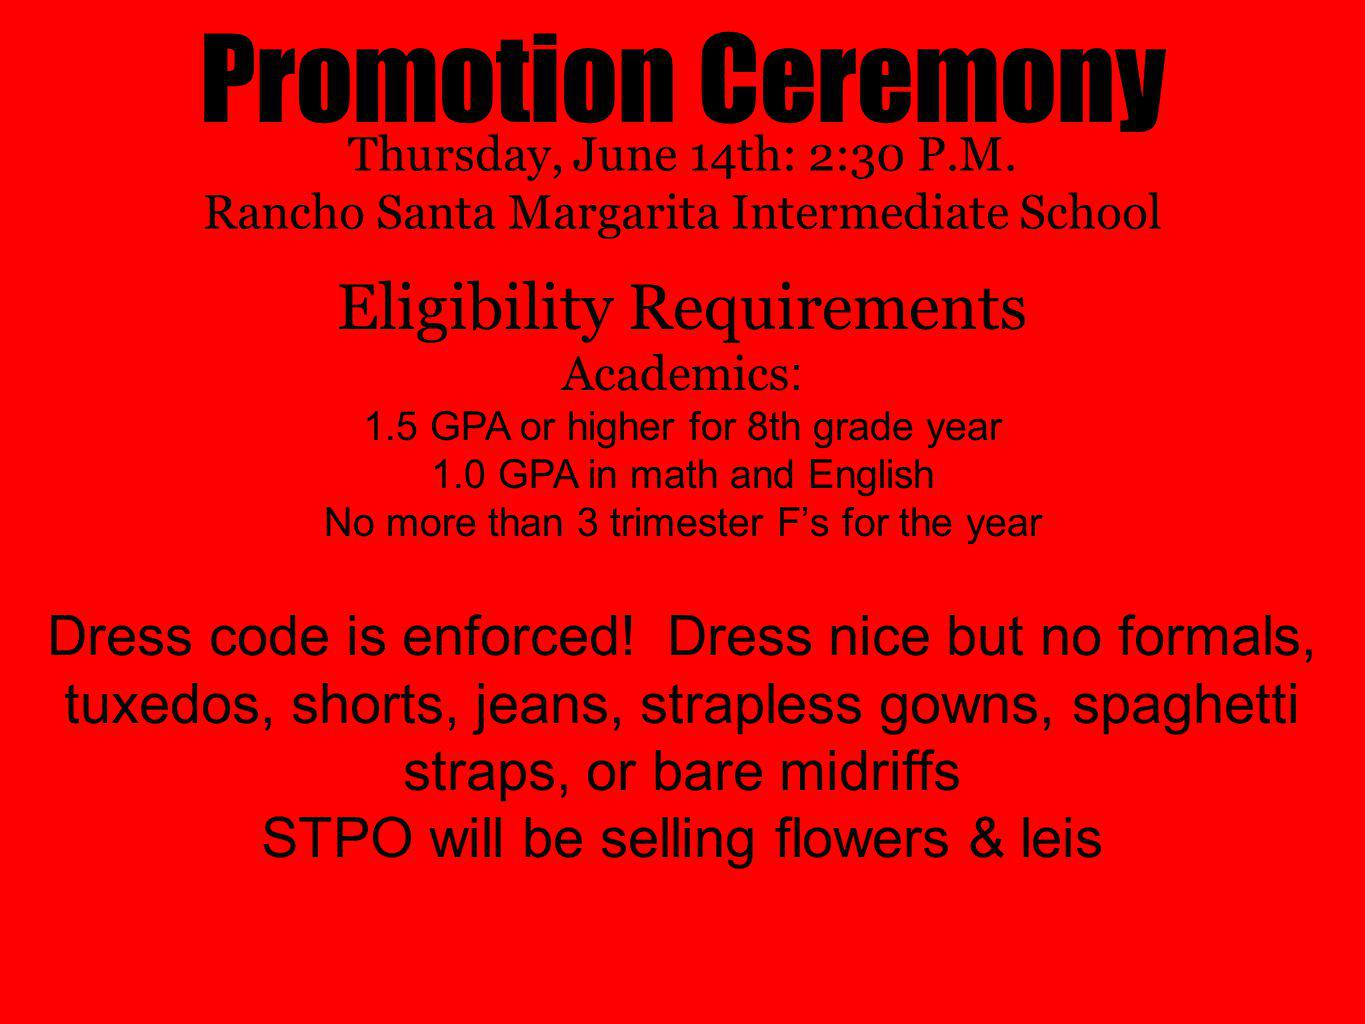 Promotion Ceremony Eligibility Requirements